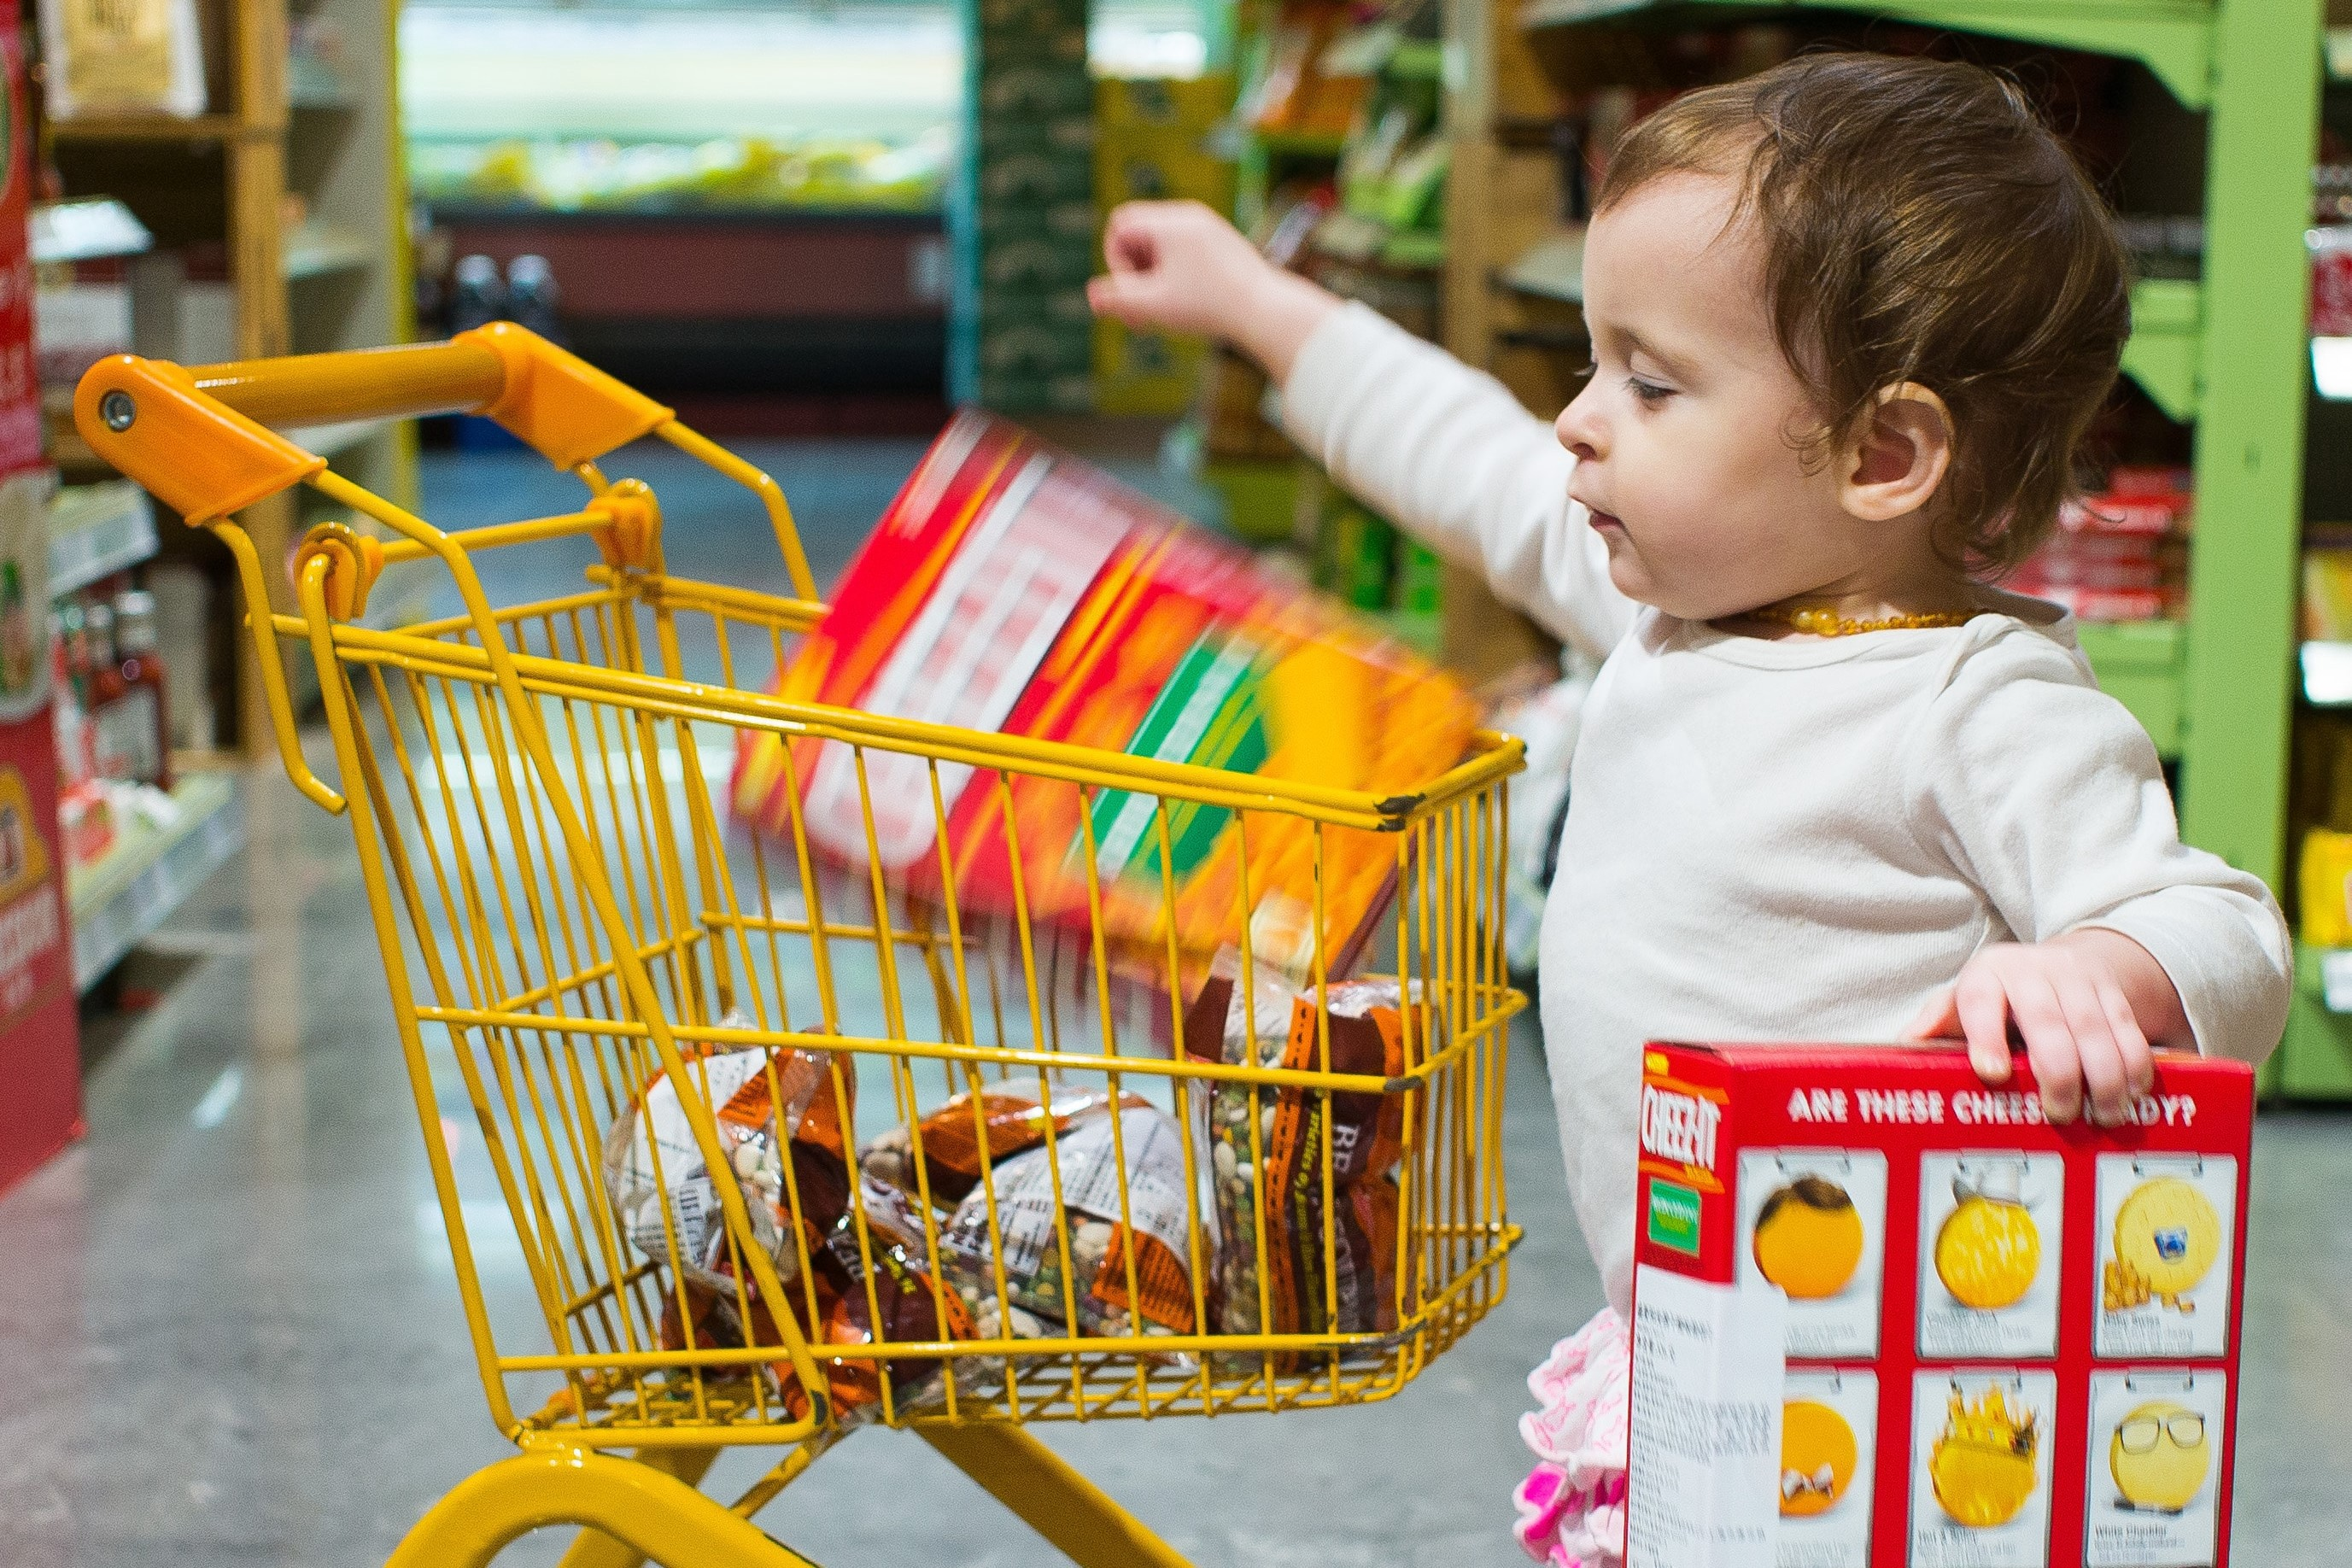 Toddler drops box of crackers into a small yellow shopping cart in a grocery store